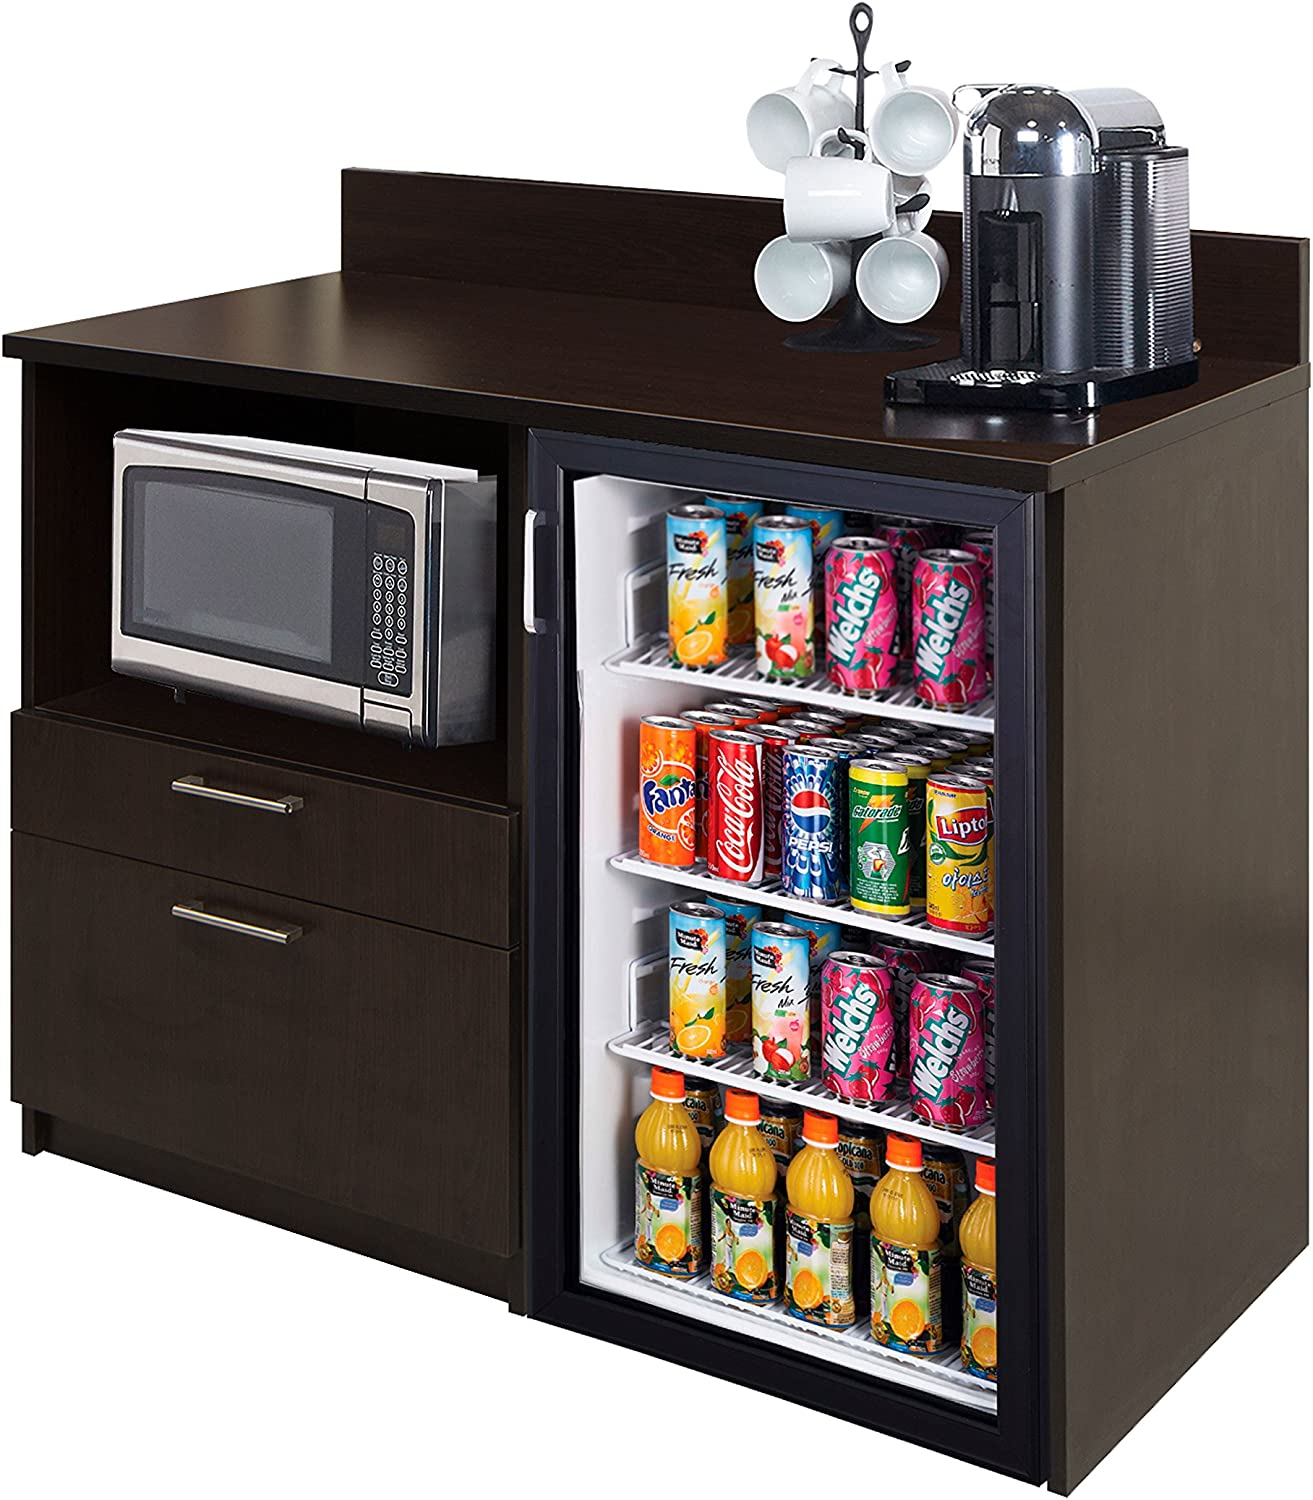 Coffee Kitchen Lunch Break Room Furniture Cabinets Fully Assembled Ready to Use 1pc Group Model 3283 Color Espresso - Instantly Create Your New Break Room!!! (Note: Purchase Includes Furniture ONLY).